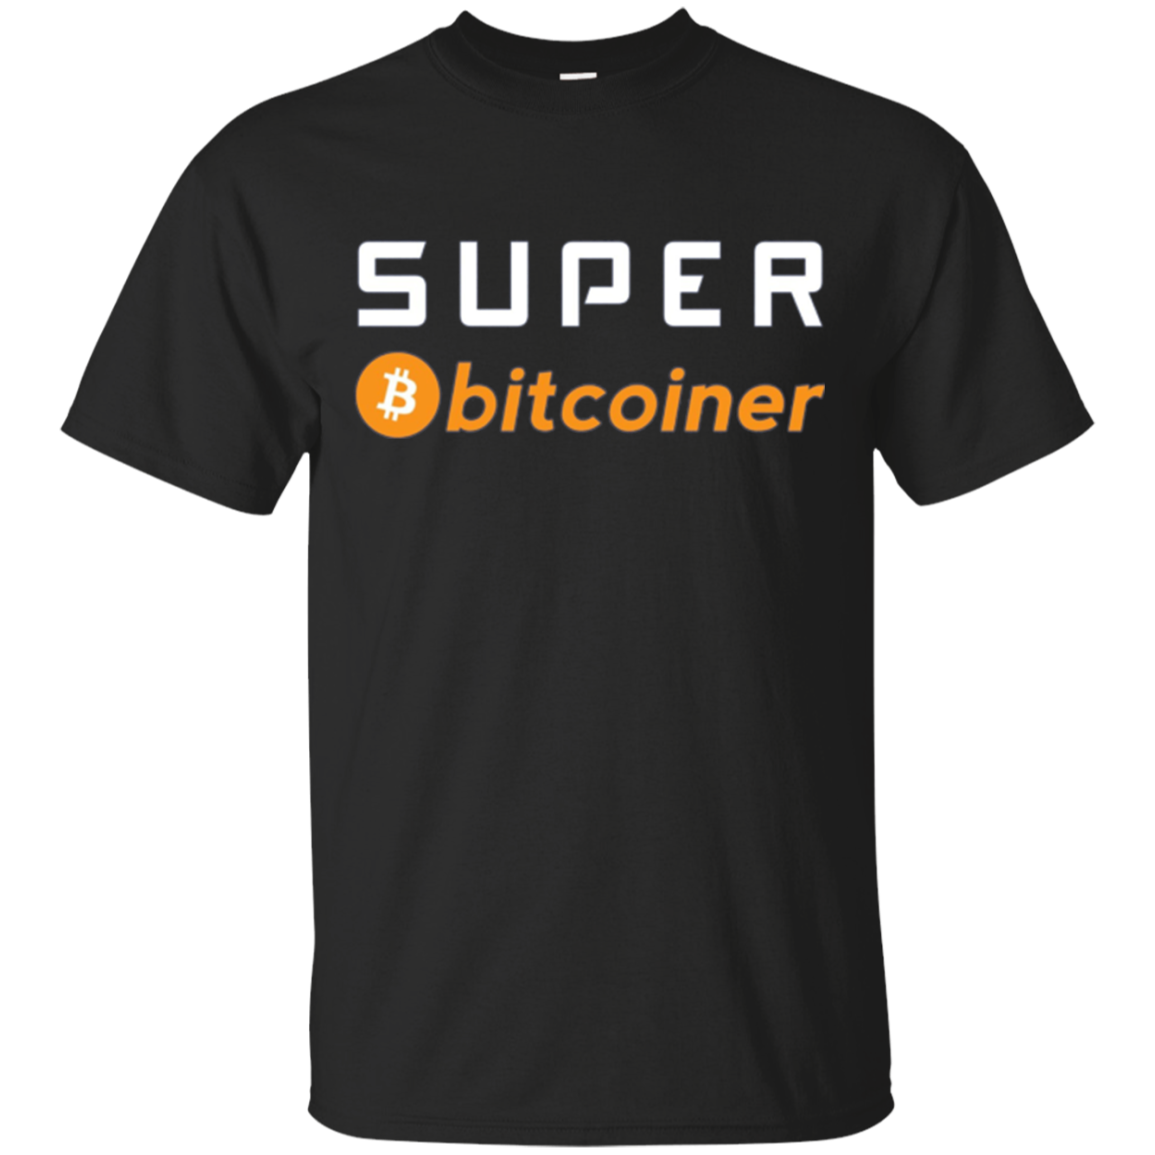 SUPER BITCOINER Bitcoin T shirt Long Sleeve funny for Miner